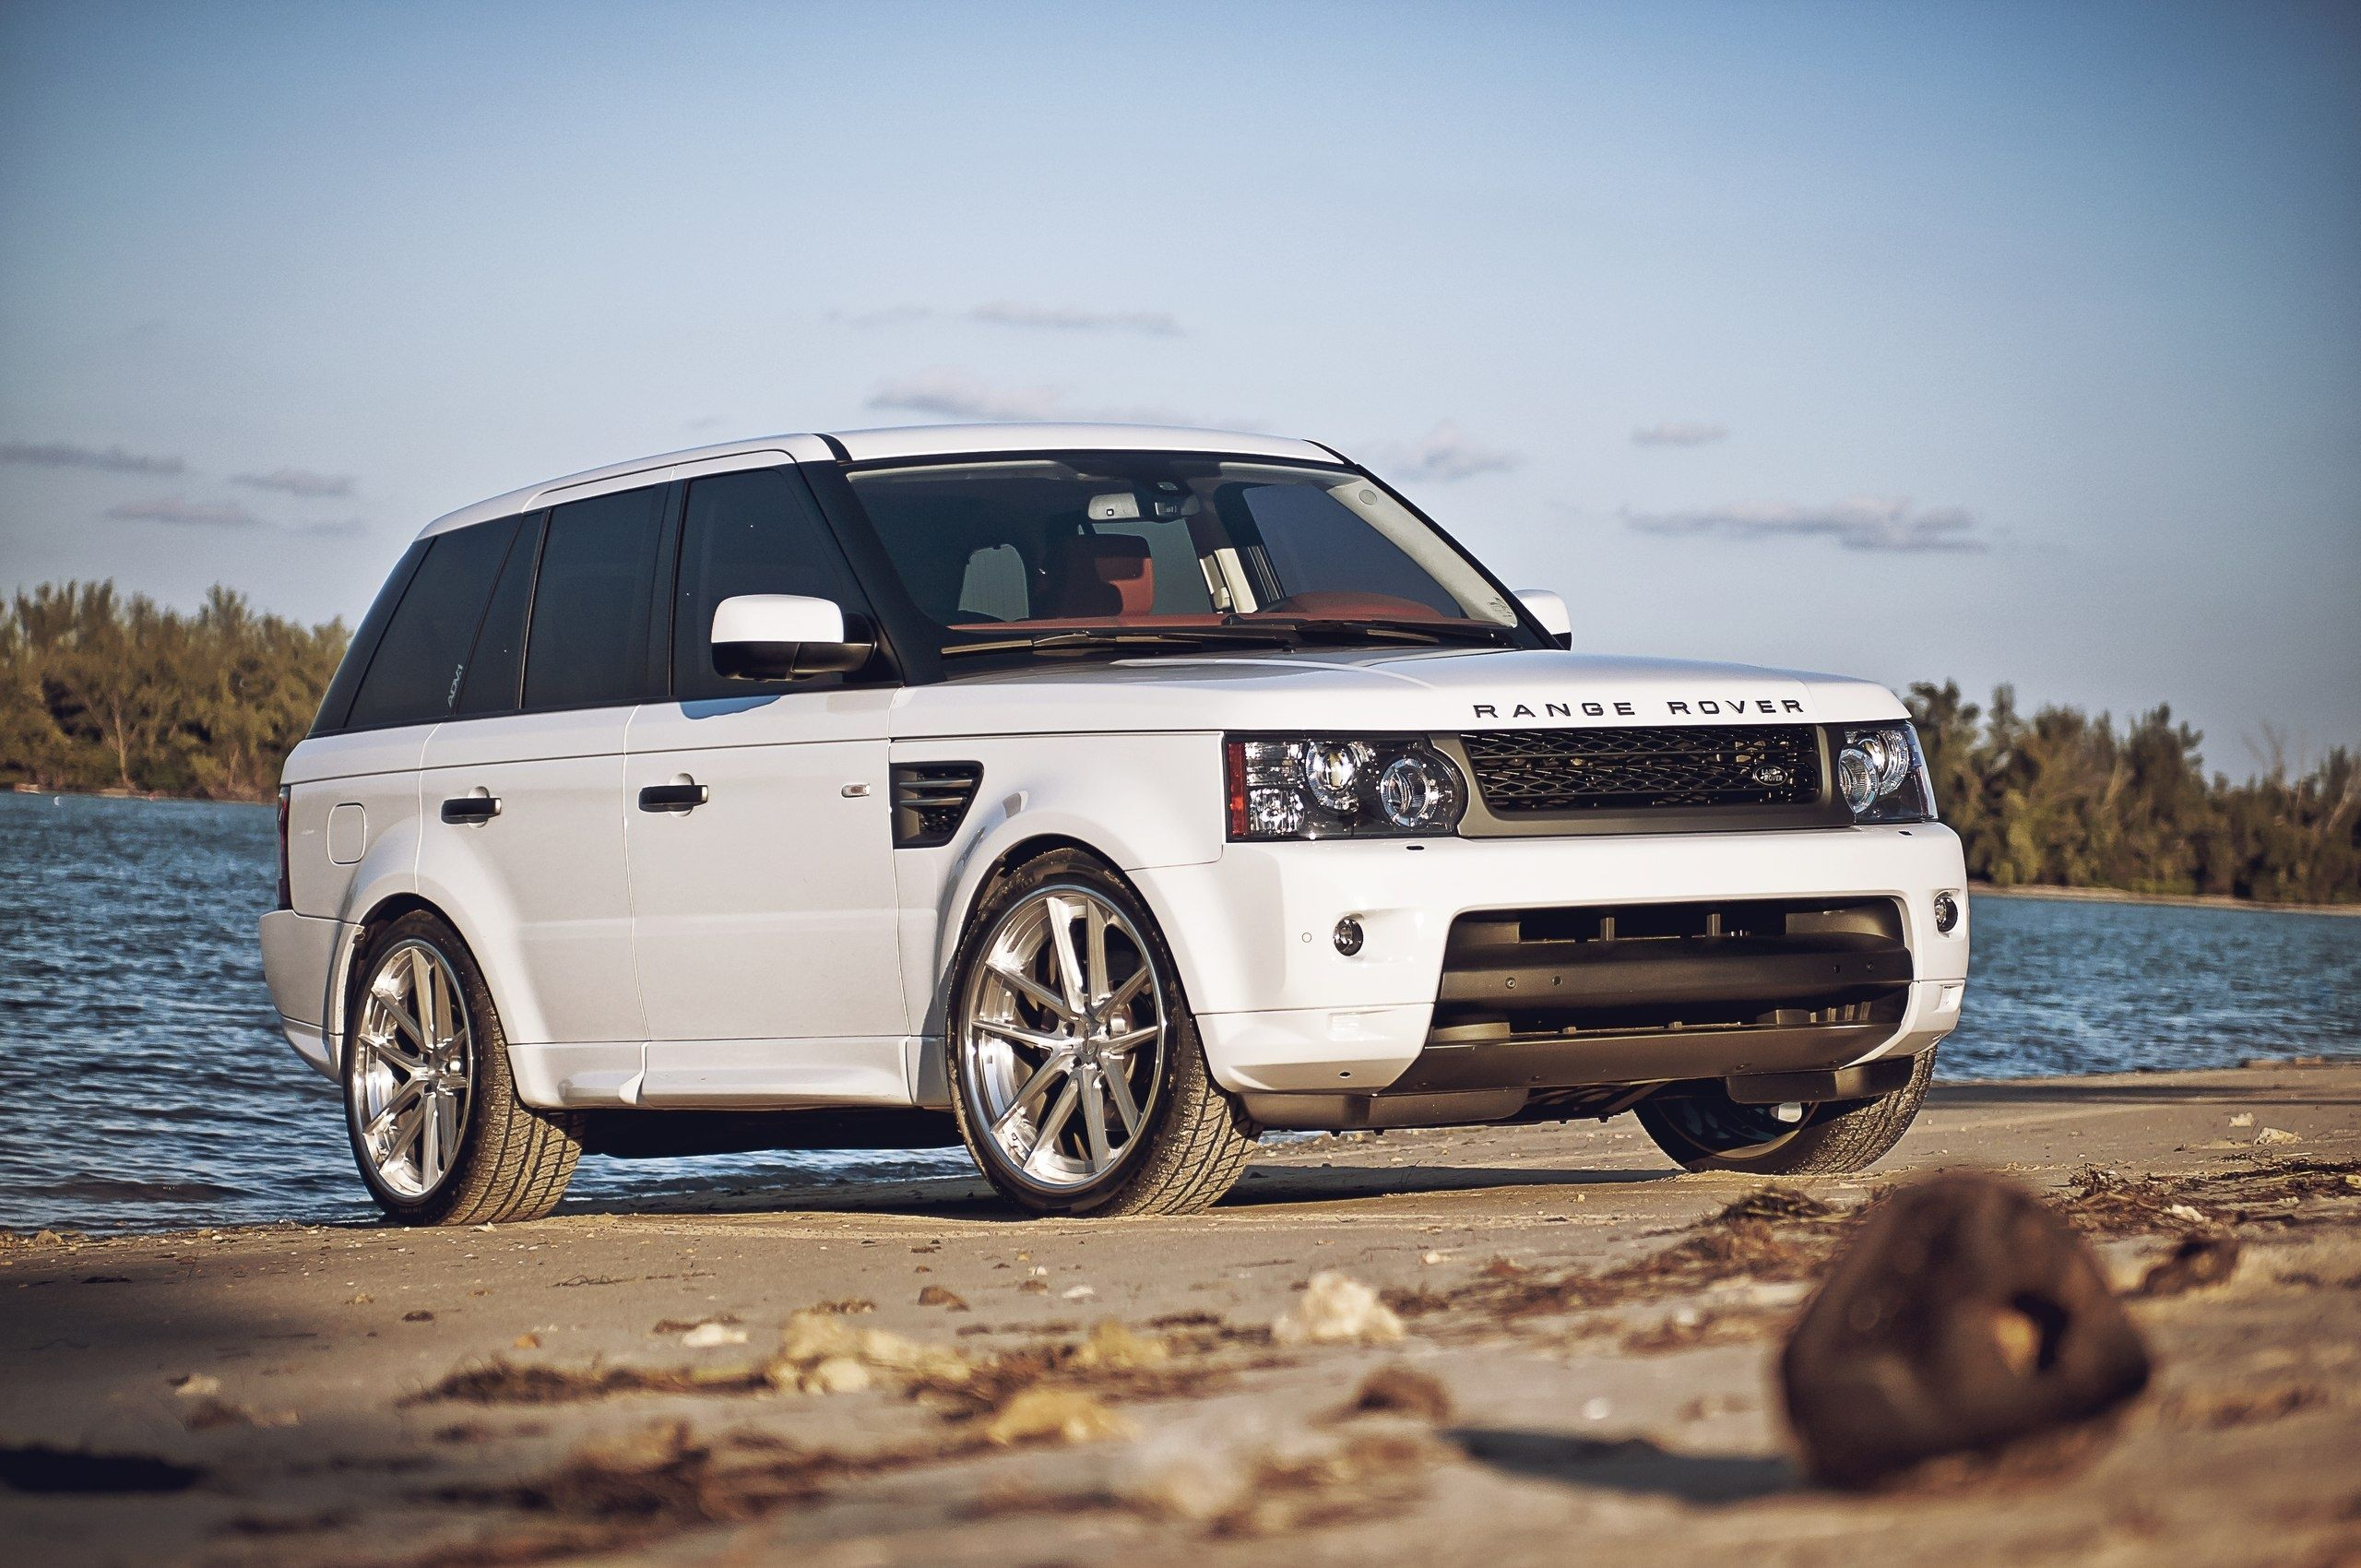 nice desktop wallpaper of white machine picture of sand beach range rover. Black Bedroom Furniture Sets. Home Design Ideas